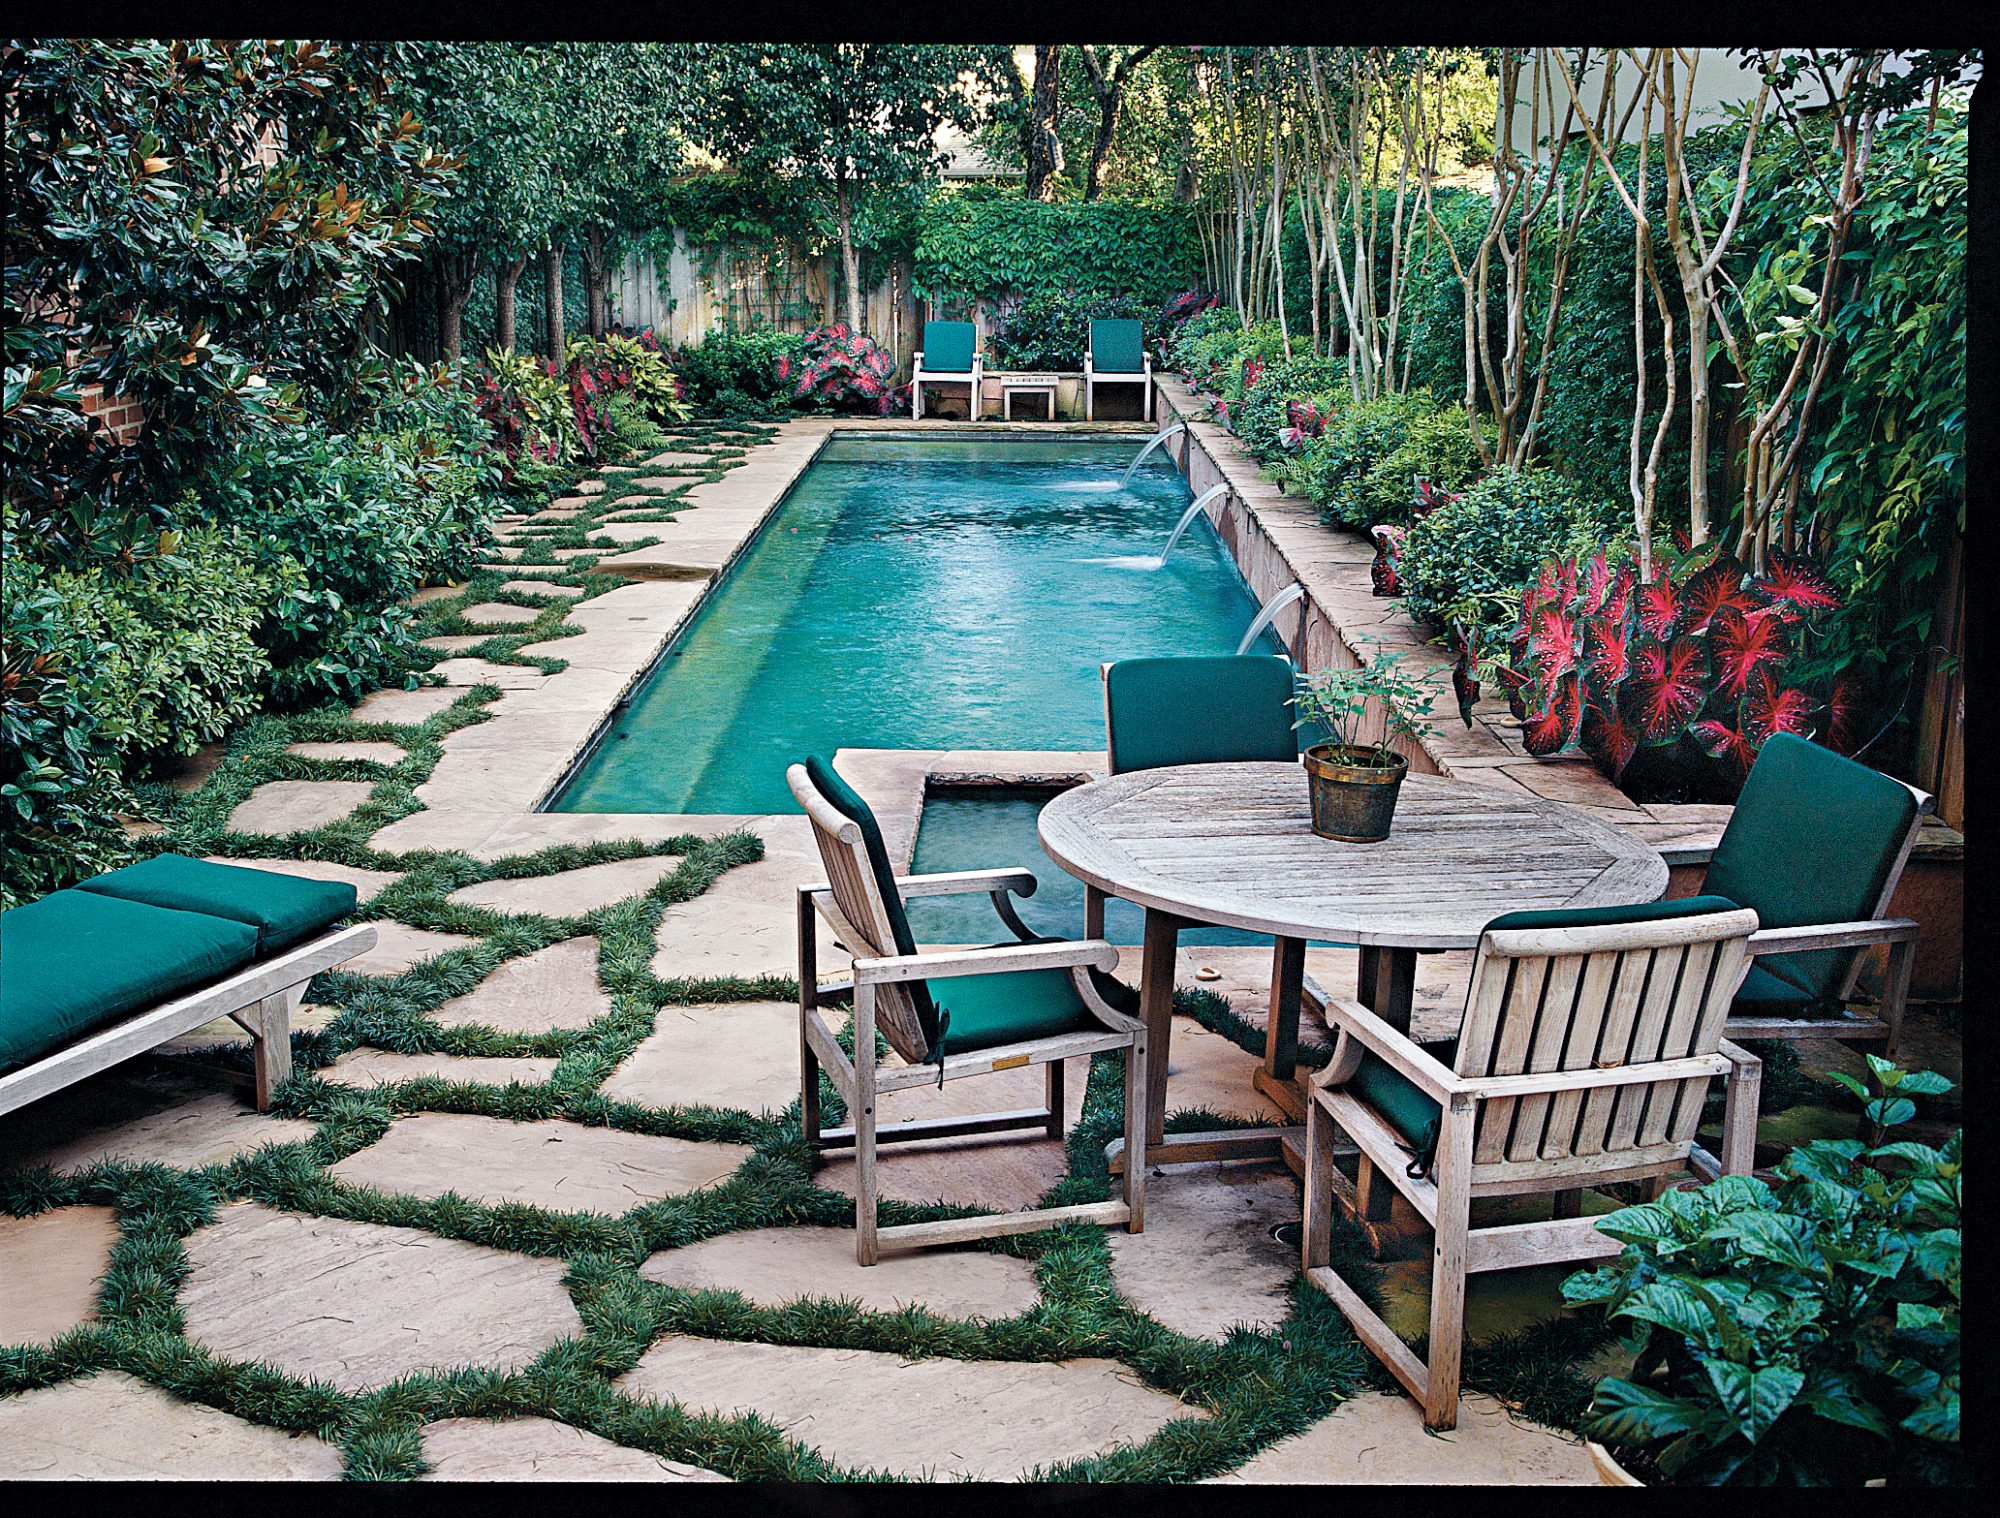 Enter a swimming pool 39 s oasis southern living for Garden oases pool entrance